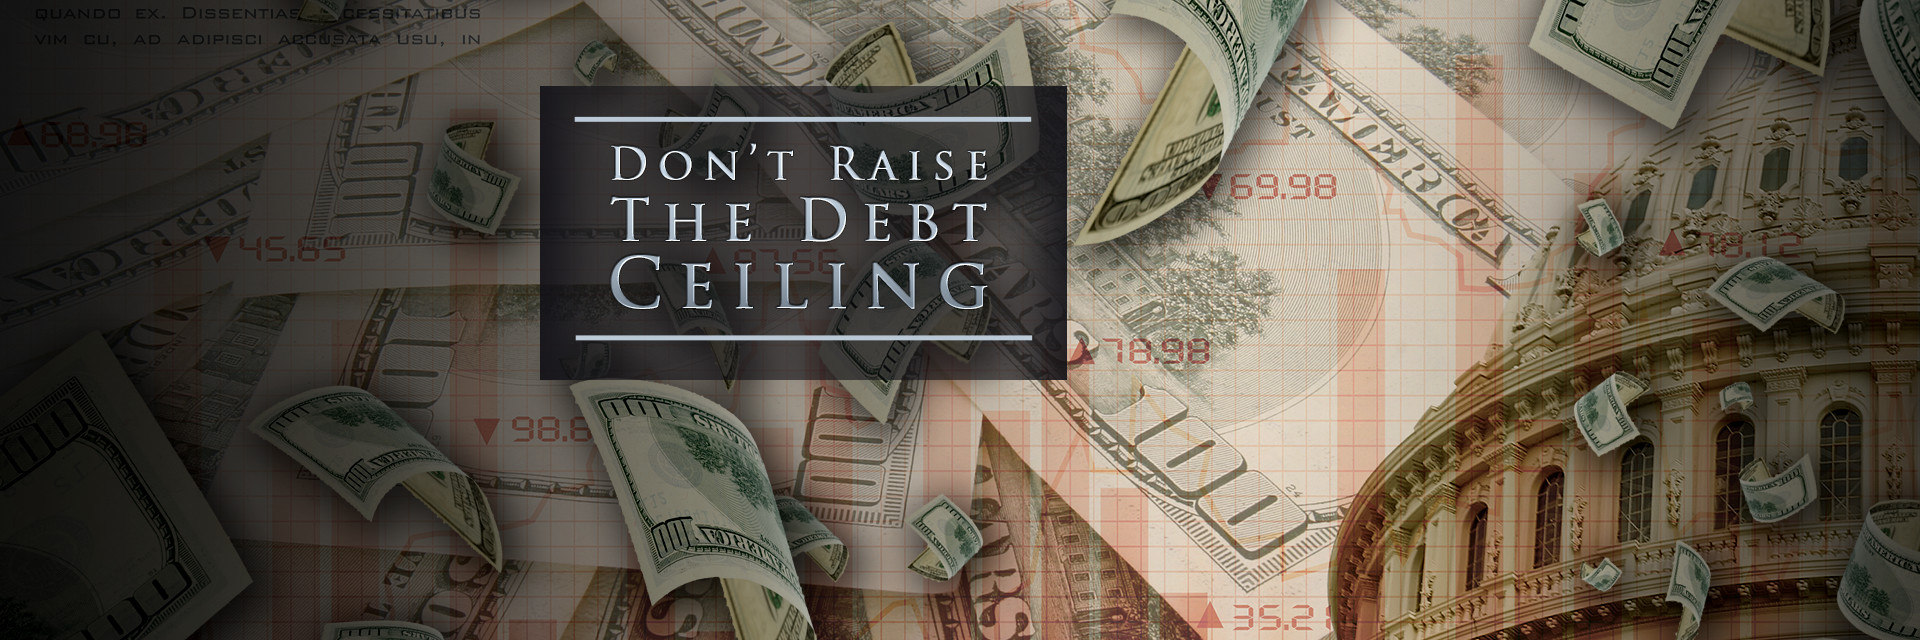 Debt-Ceiling-No-Petition-Slider